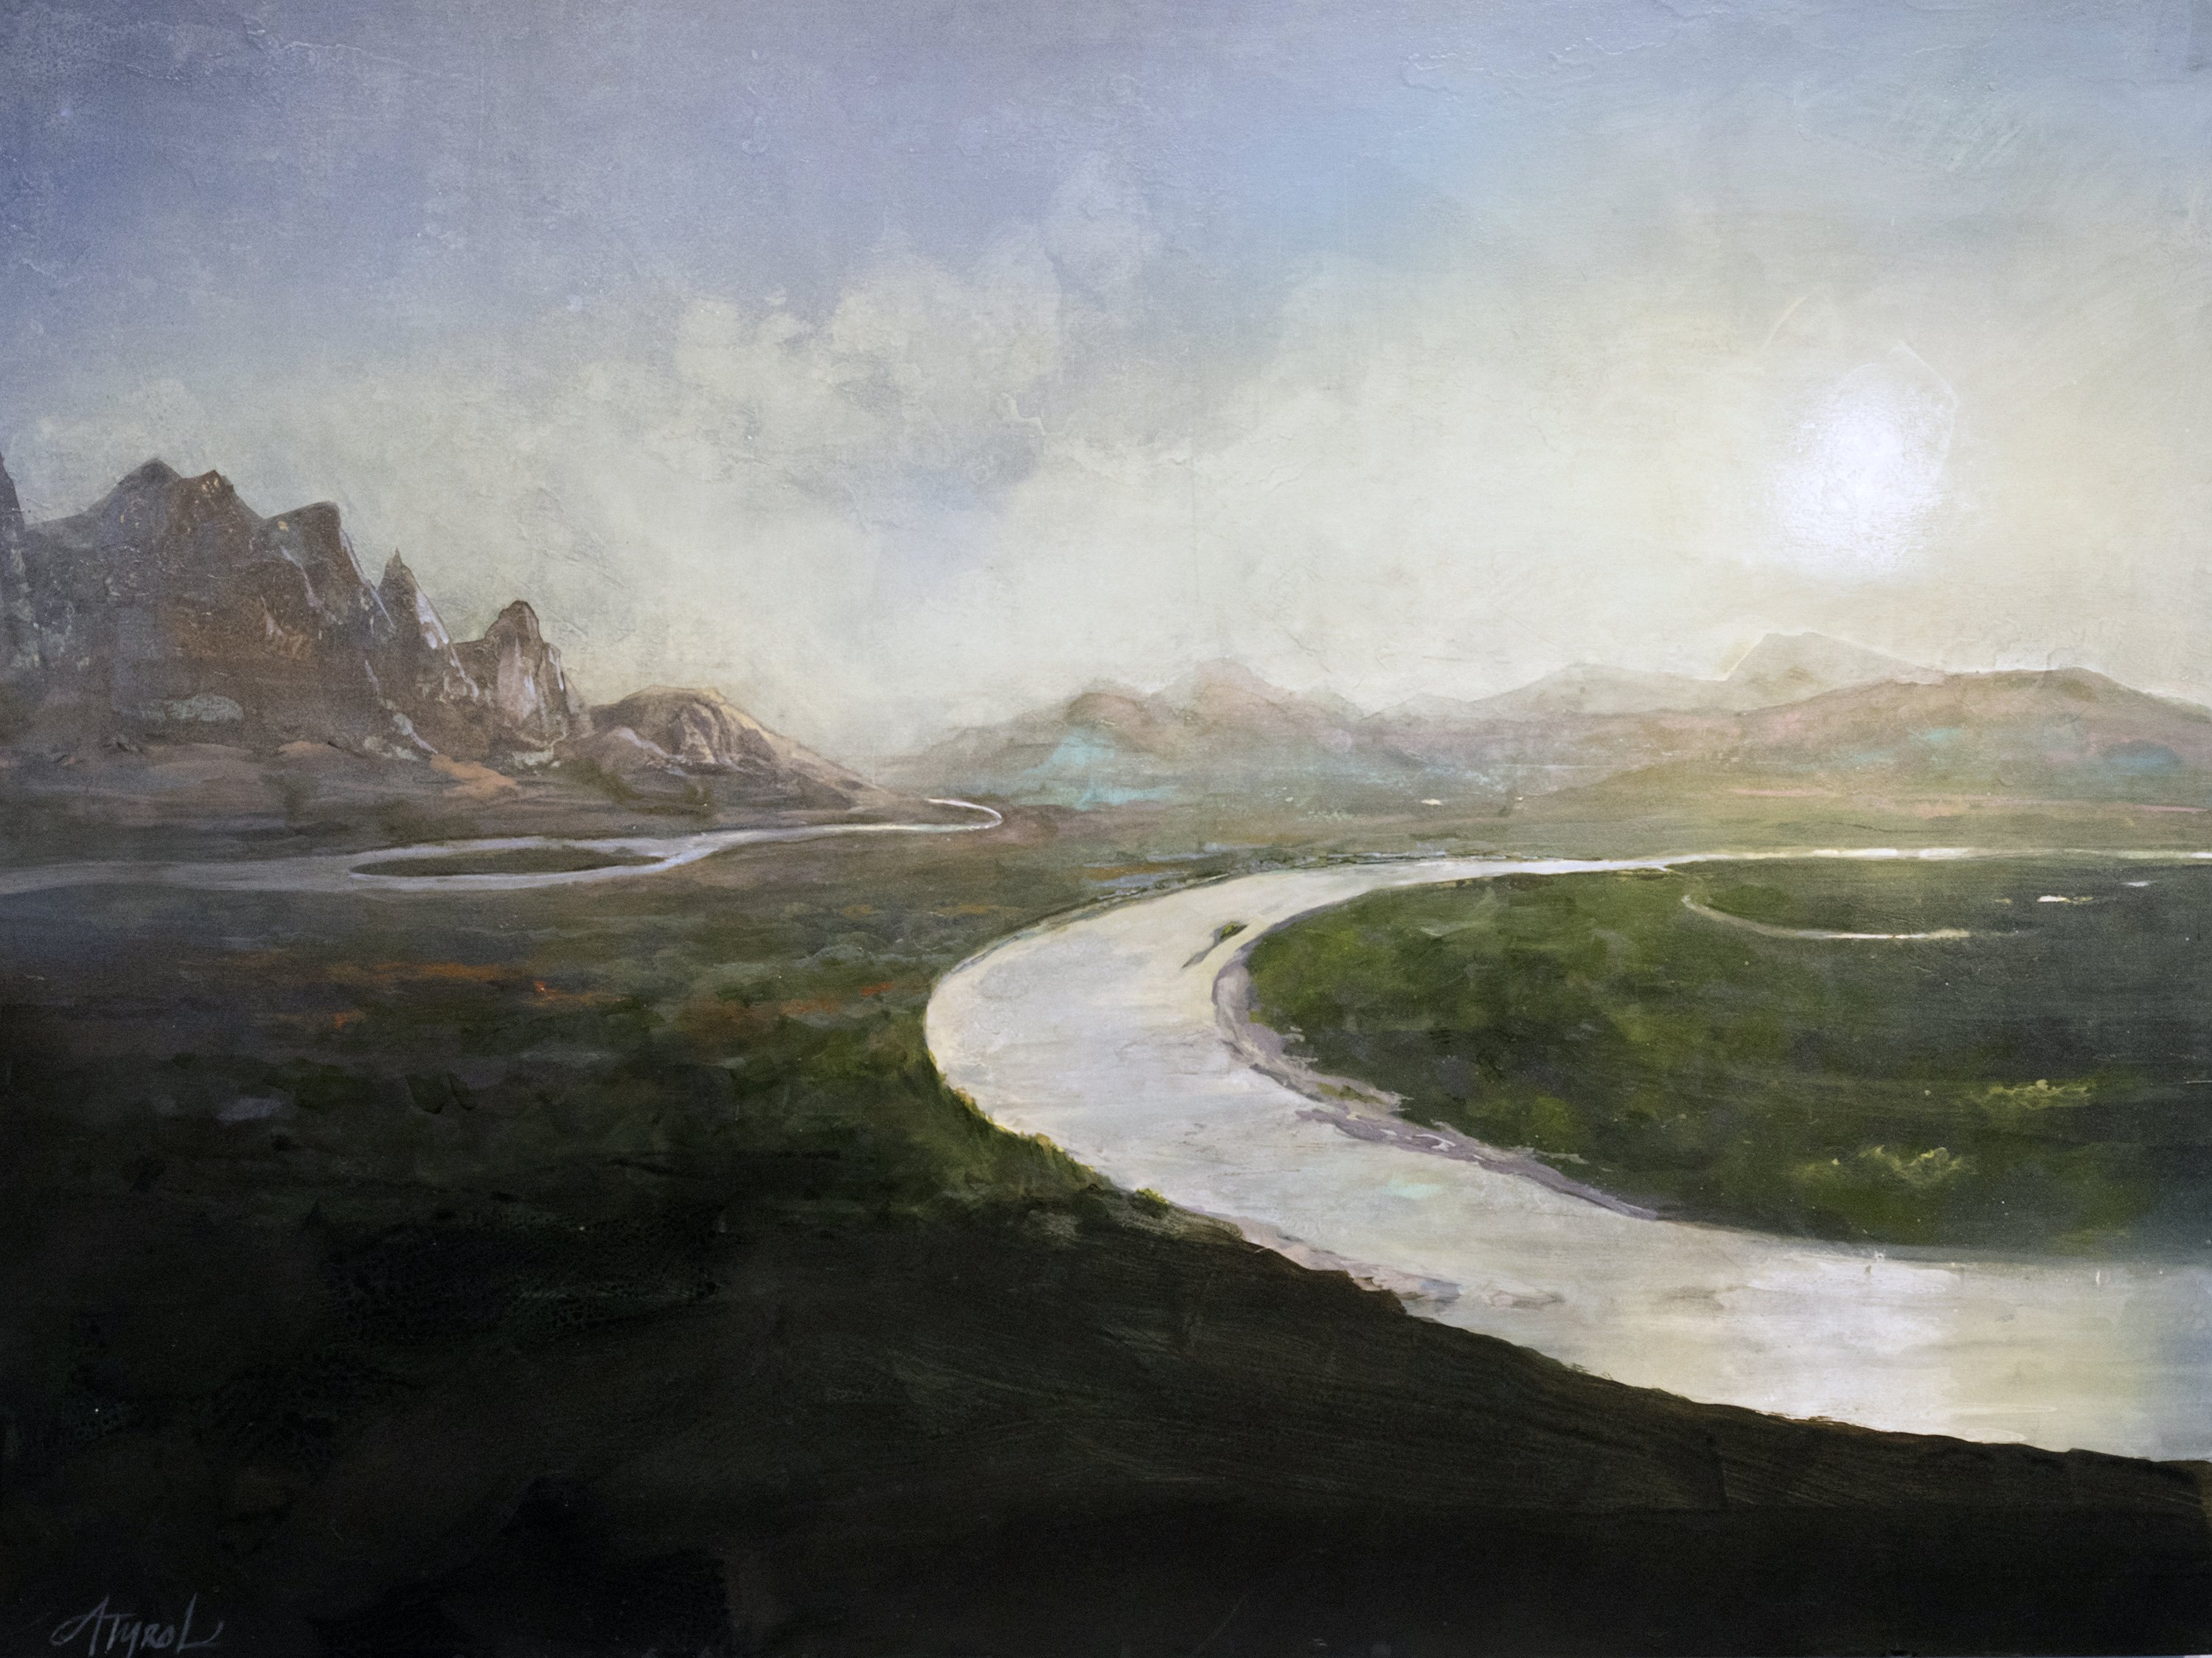 """Origins"" by Adelaide Tyrol, acrylic on wood panel, 30x40"